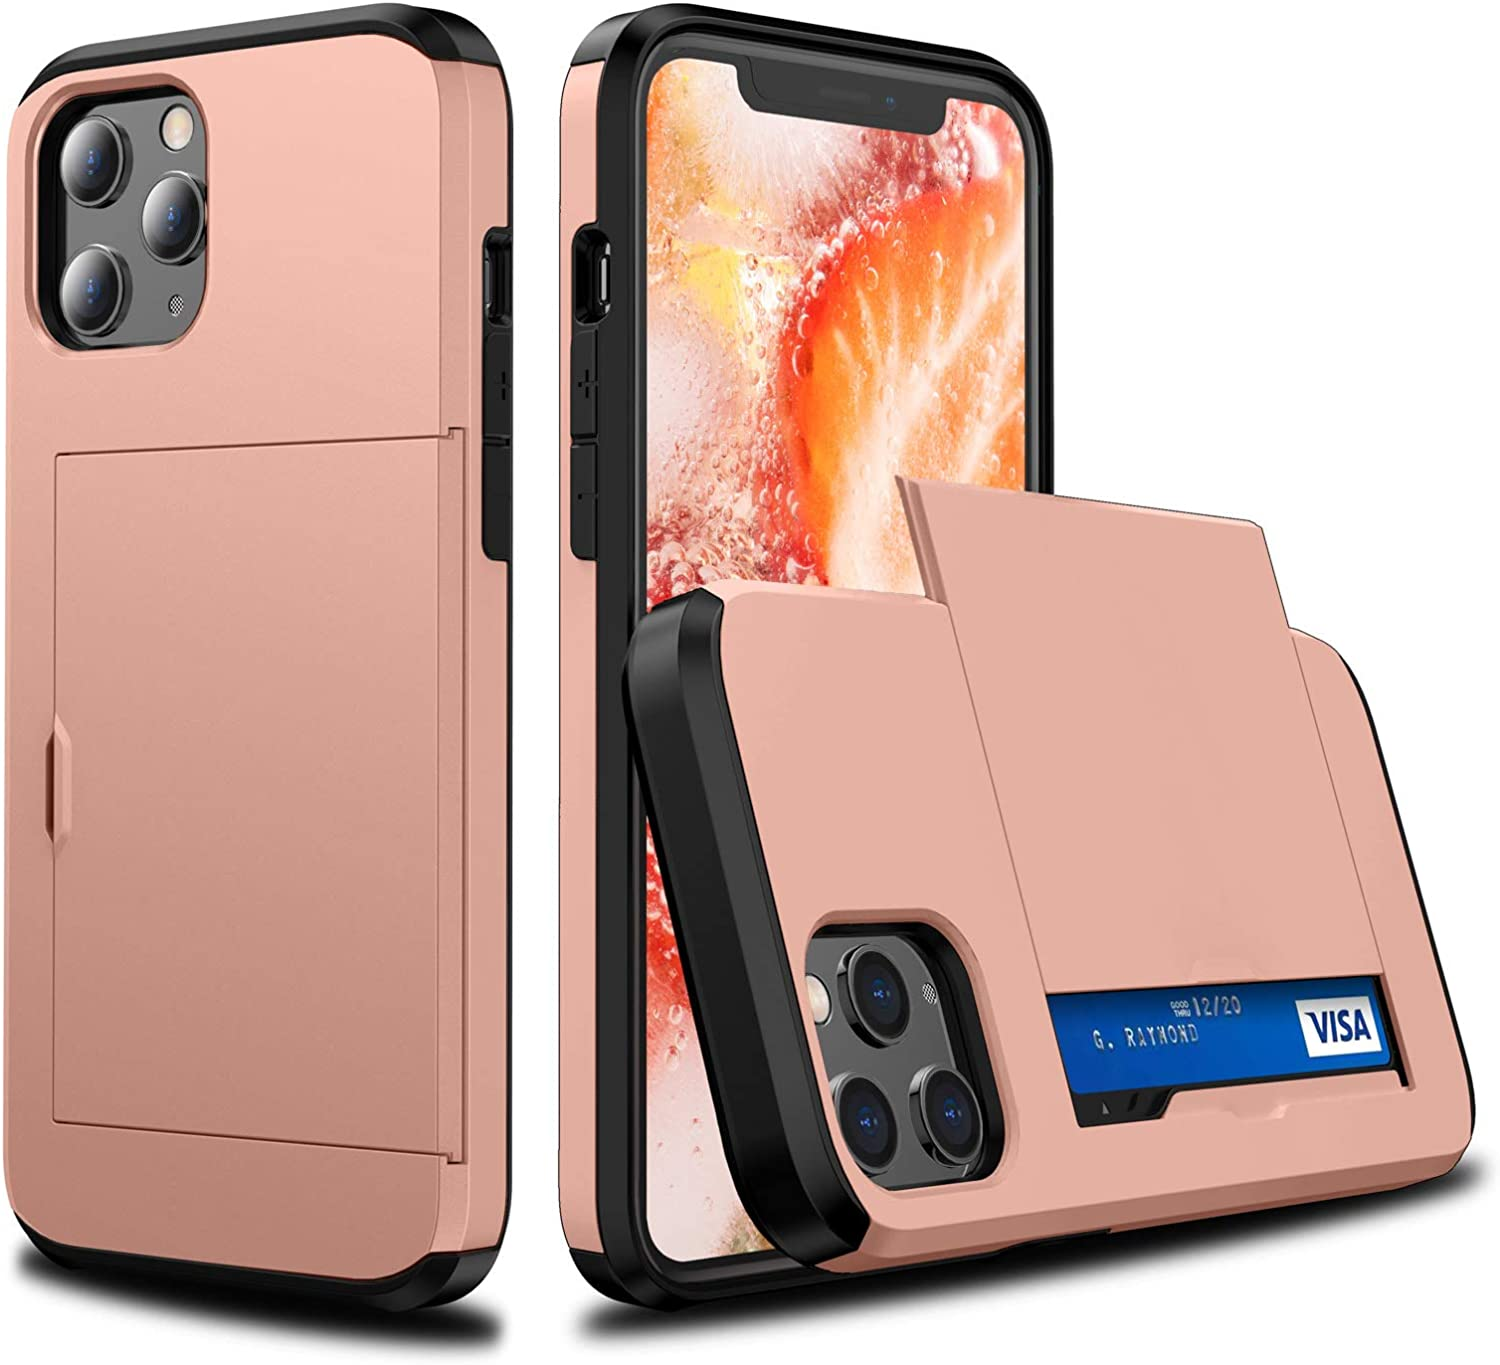 Shmimy Credit Card Holder Case for iPhone 11 Pro Max Hidden Slot Wallet Dual Layer Cases Soft TPU Hard PC Shockproof Cover for iPhone 11 Pro Max 6.5 inch 2019